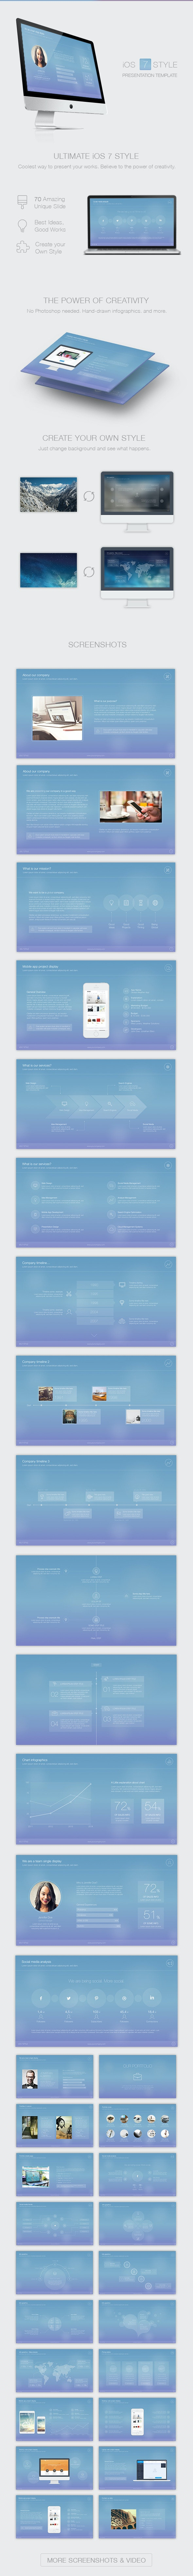 7 Style Powerpoint Template - Creative PowerPoint Templates